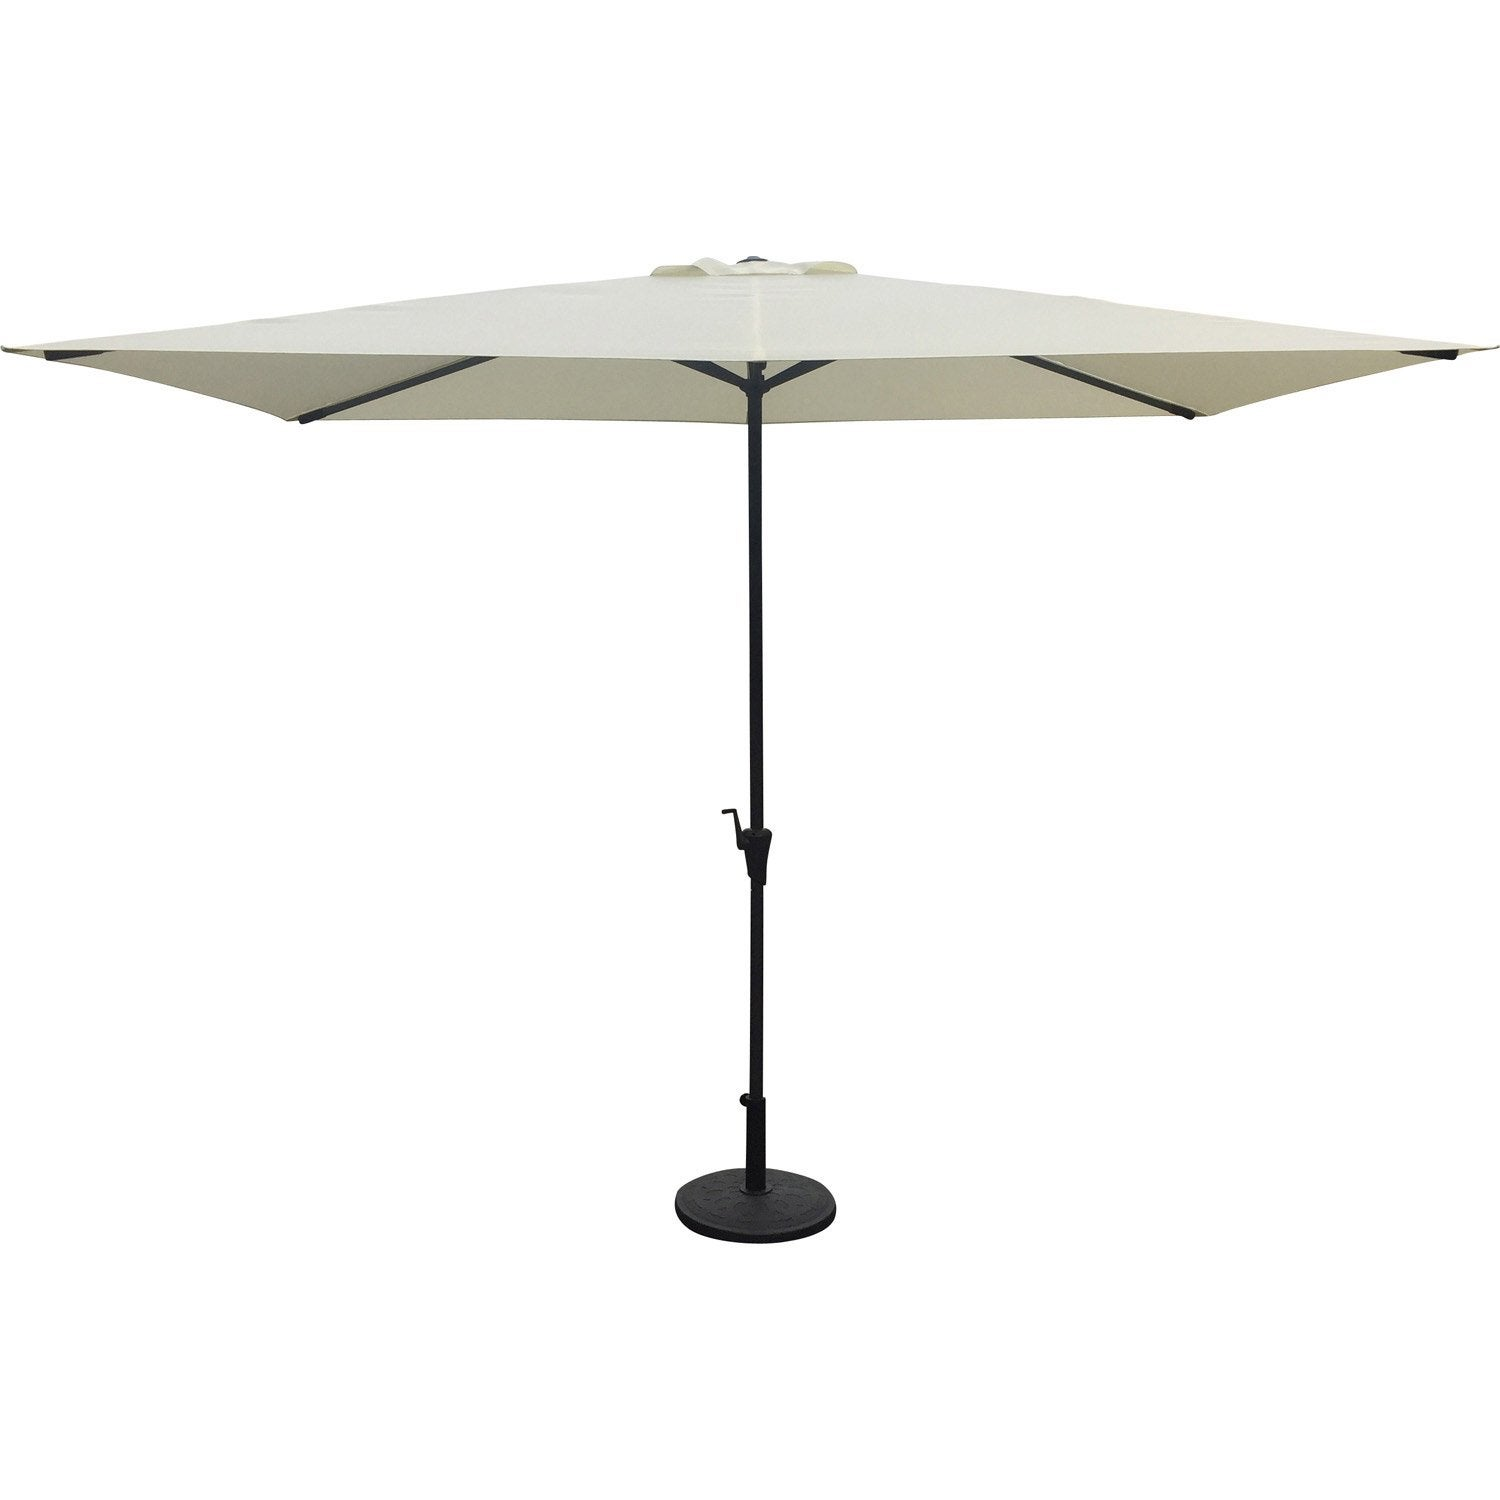 Parasol anti vent easywind m t central cru 3 x 2 m for Parasol deporte inclinable leroy merlin